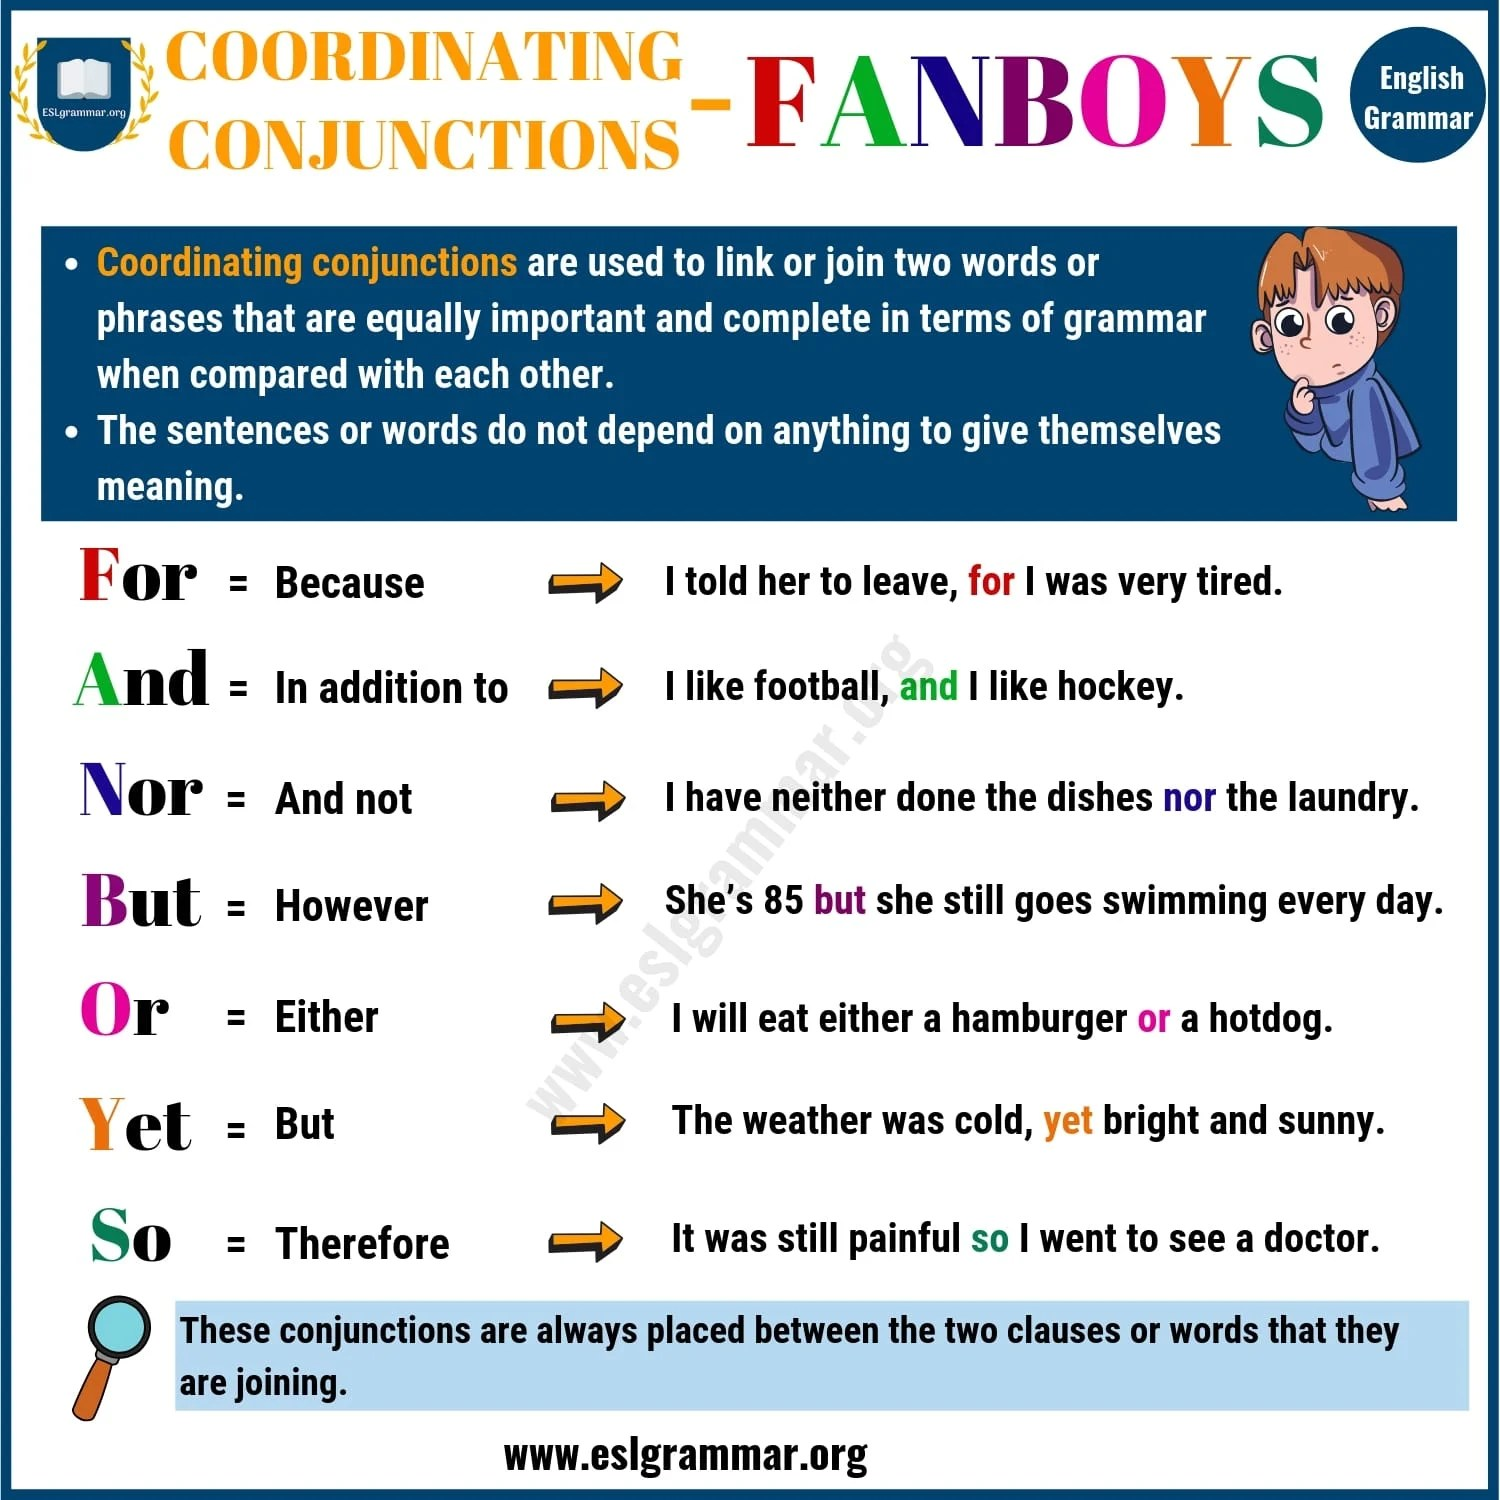 Coordinating Conjunction Fanboys Useful Rules